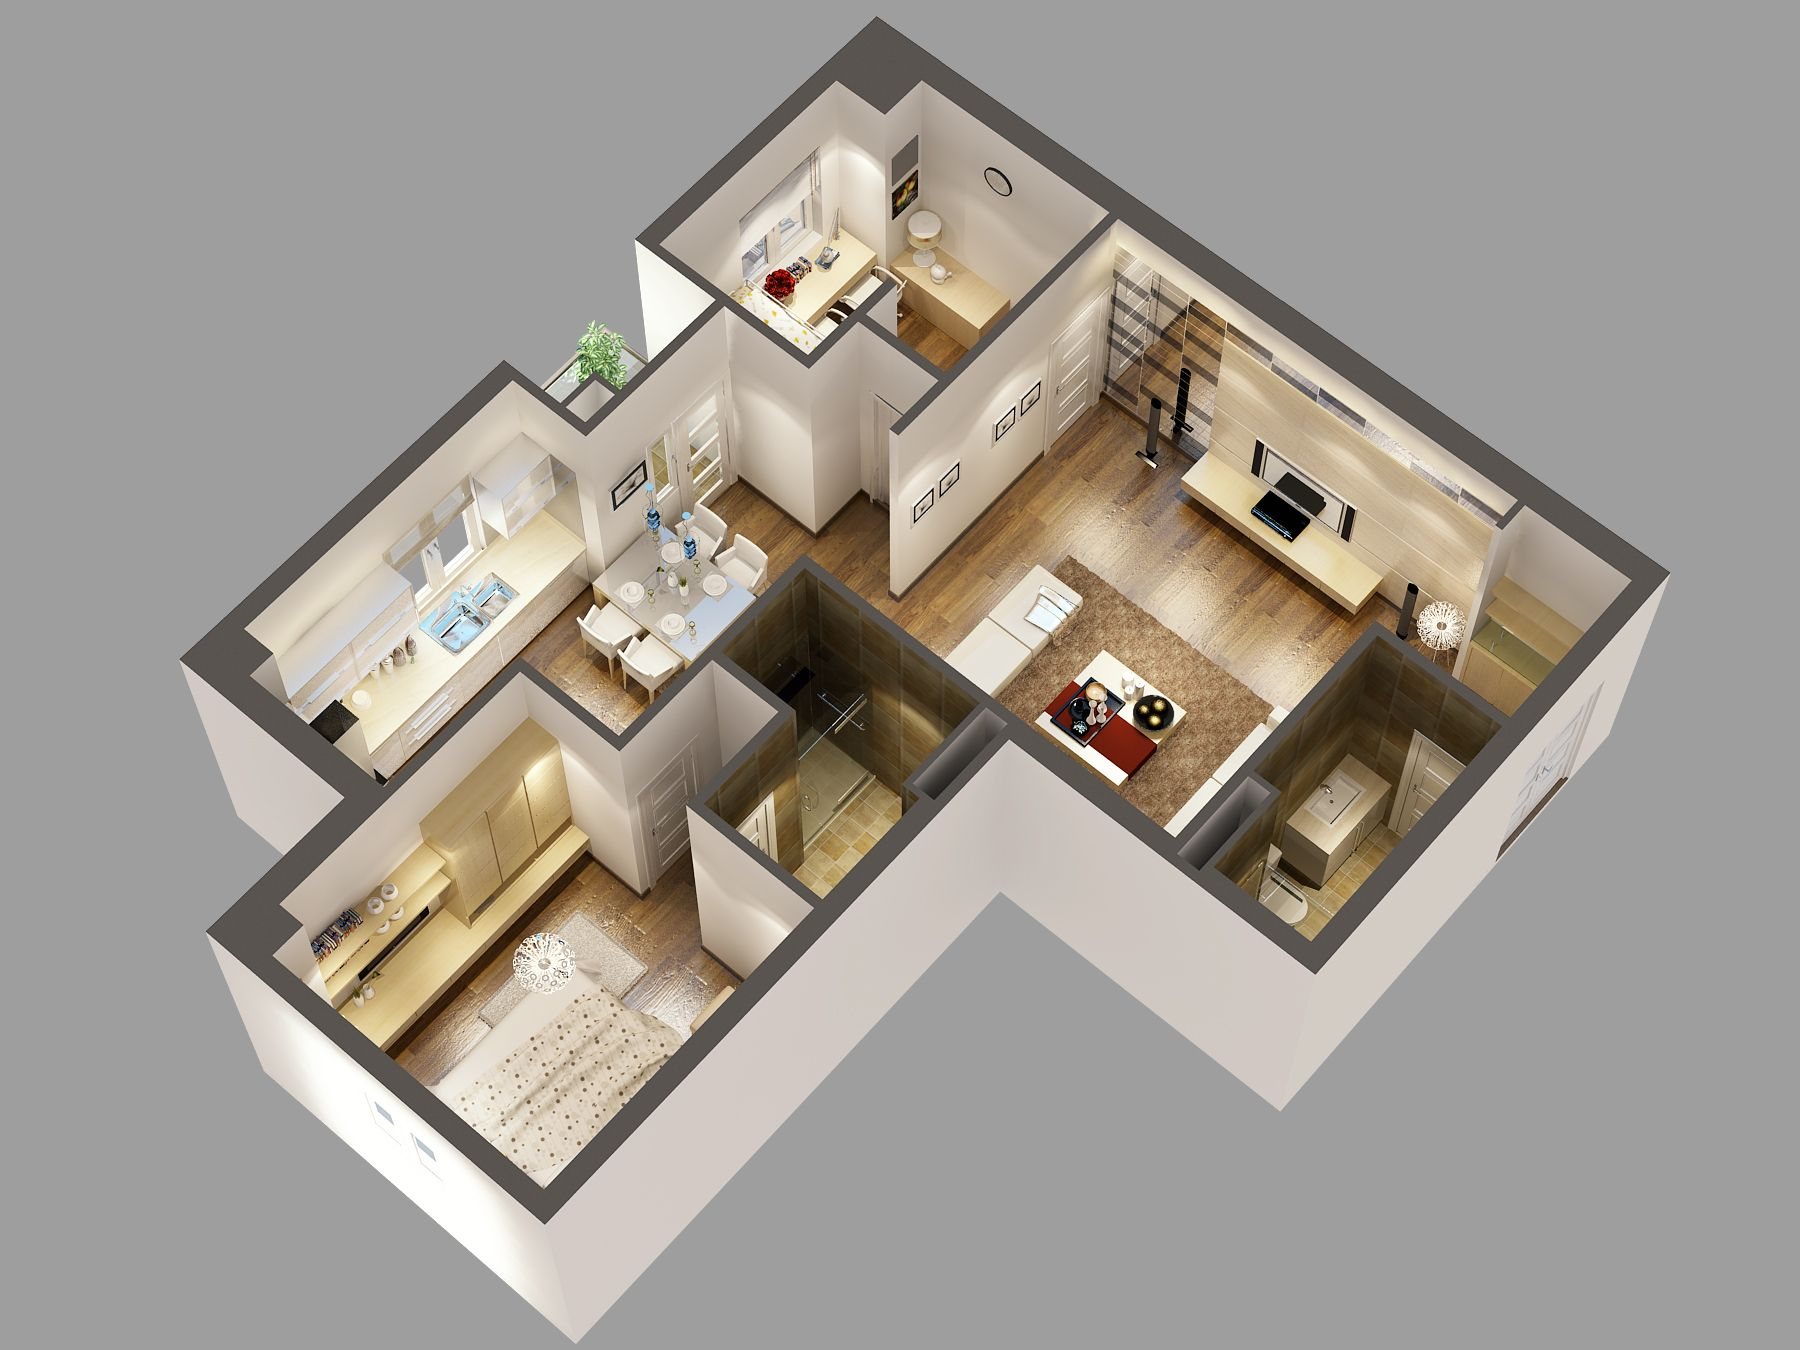 Home Design Ideas Free Download: 3d Floor Plan Software Free With Awesome Modern Interior